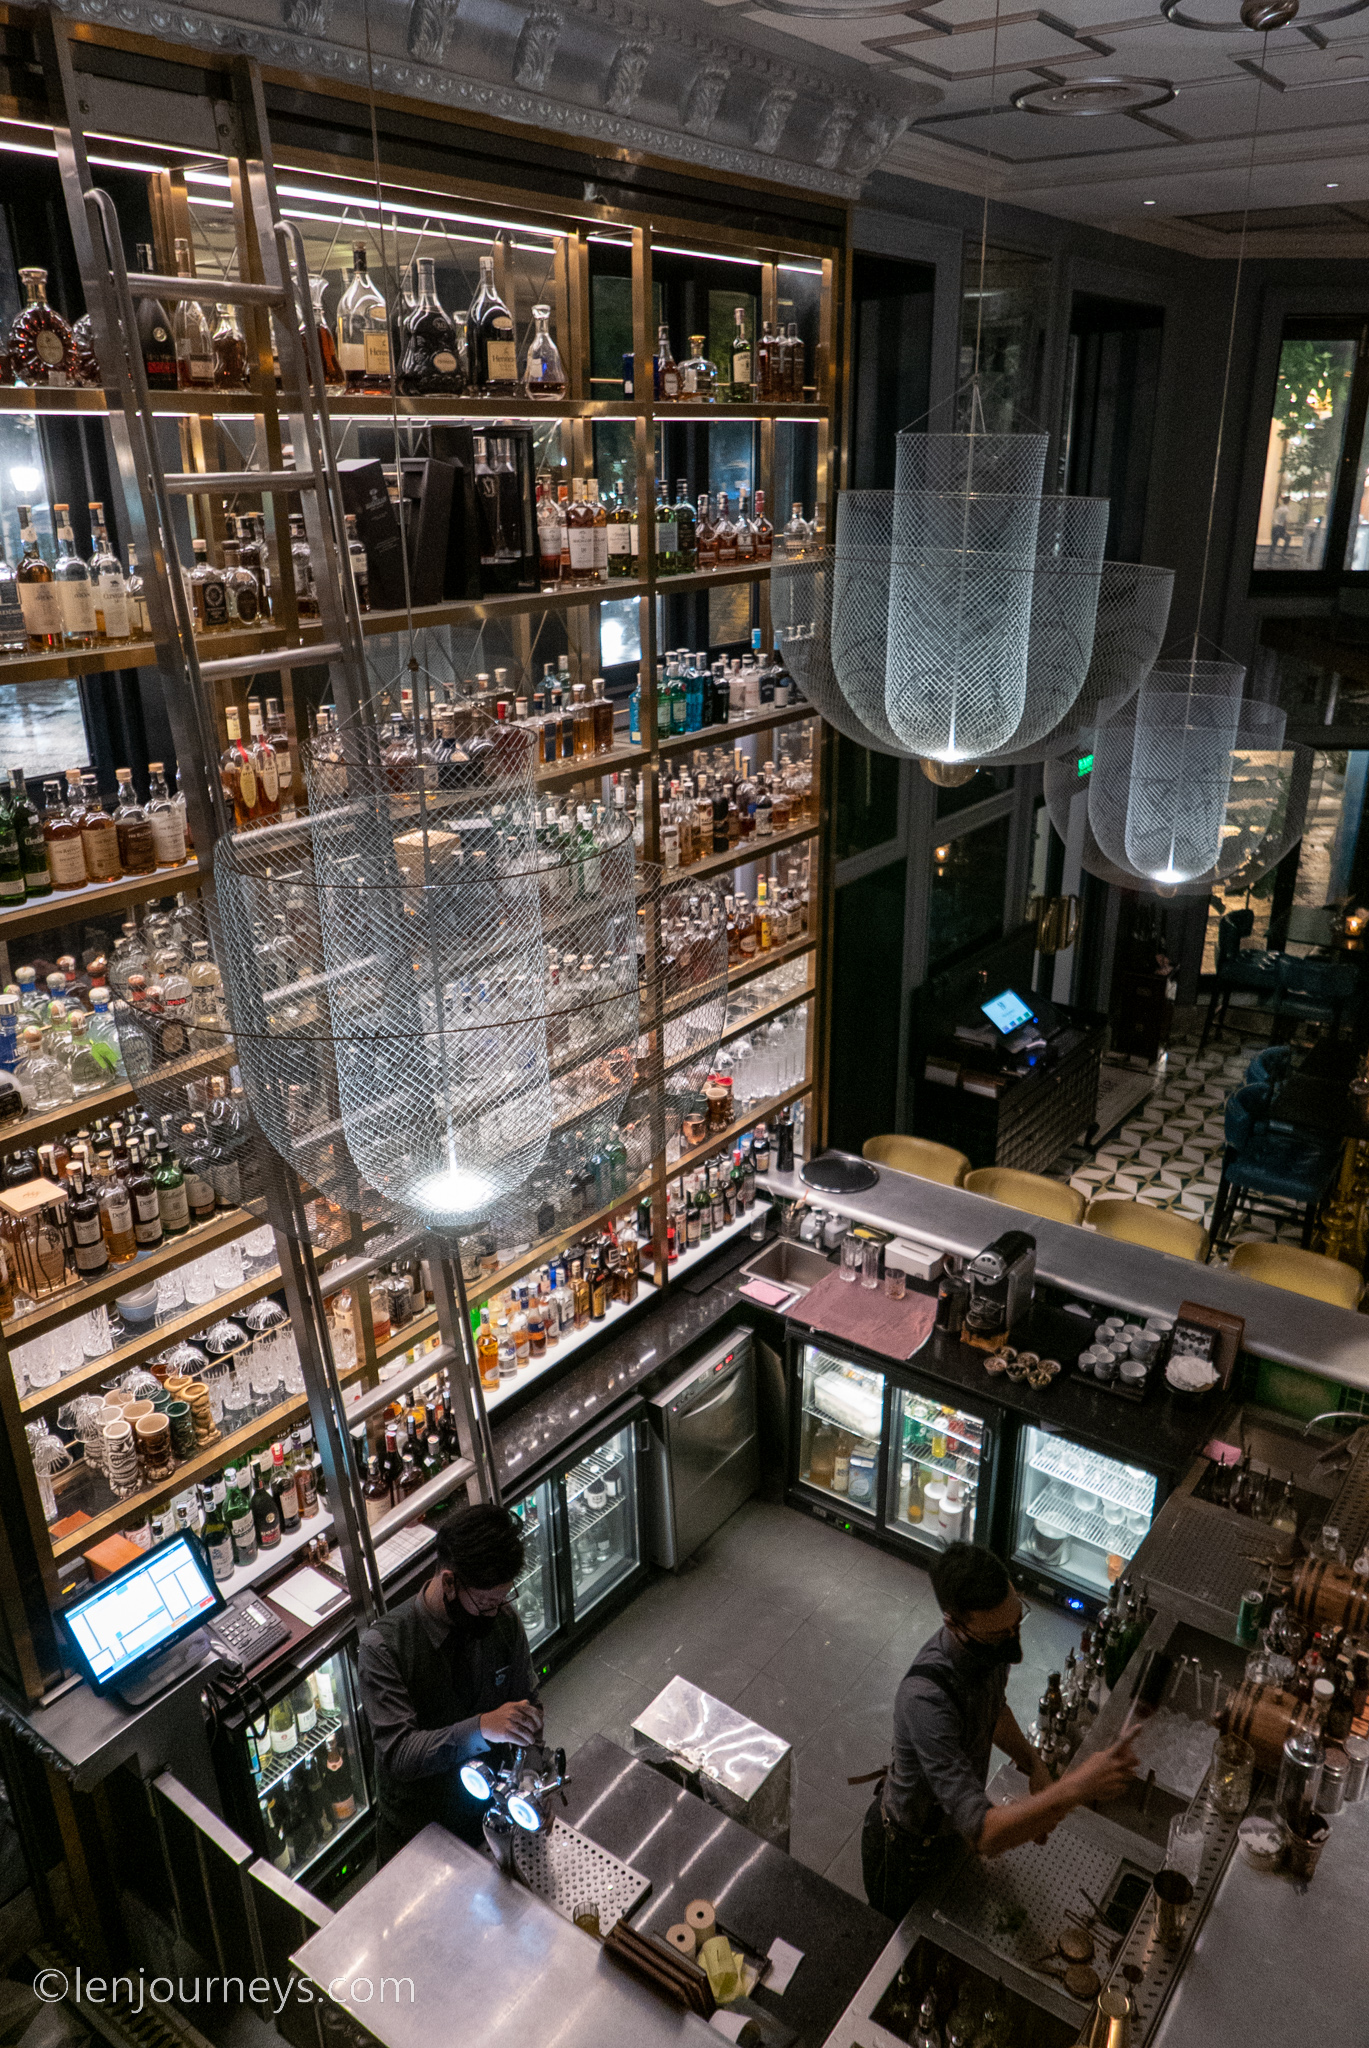 Spectacular whiskey collection